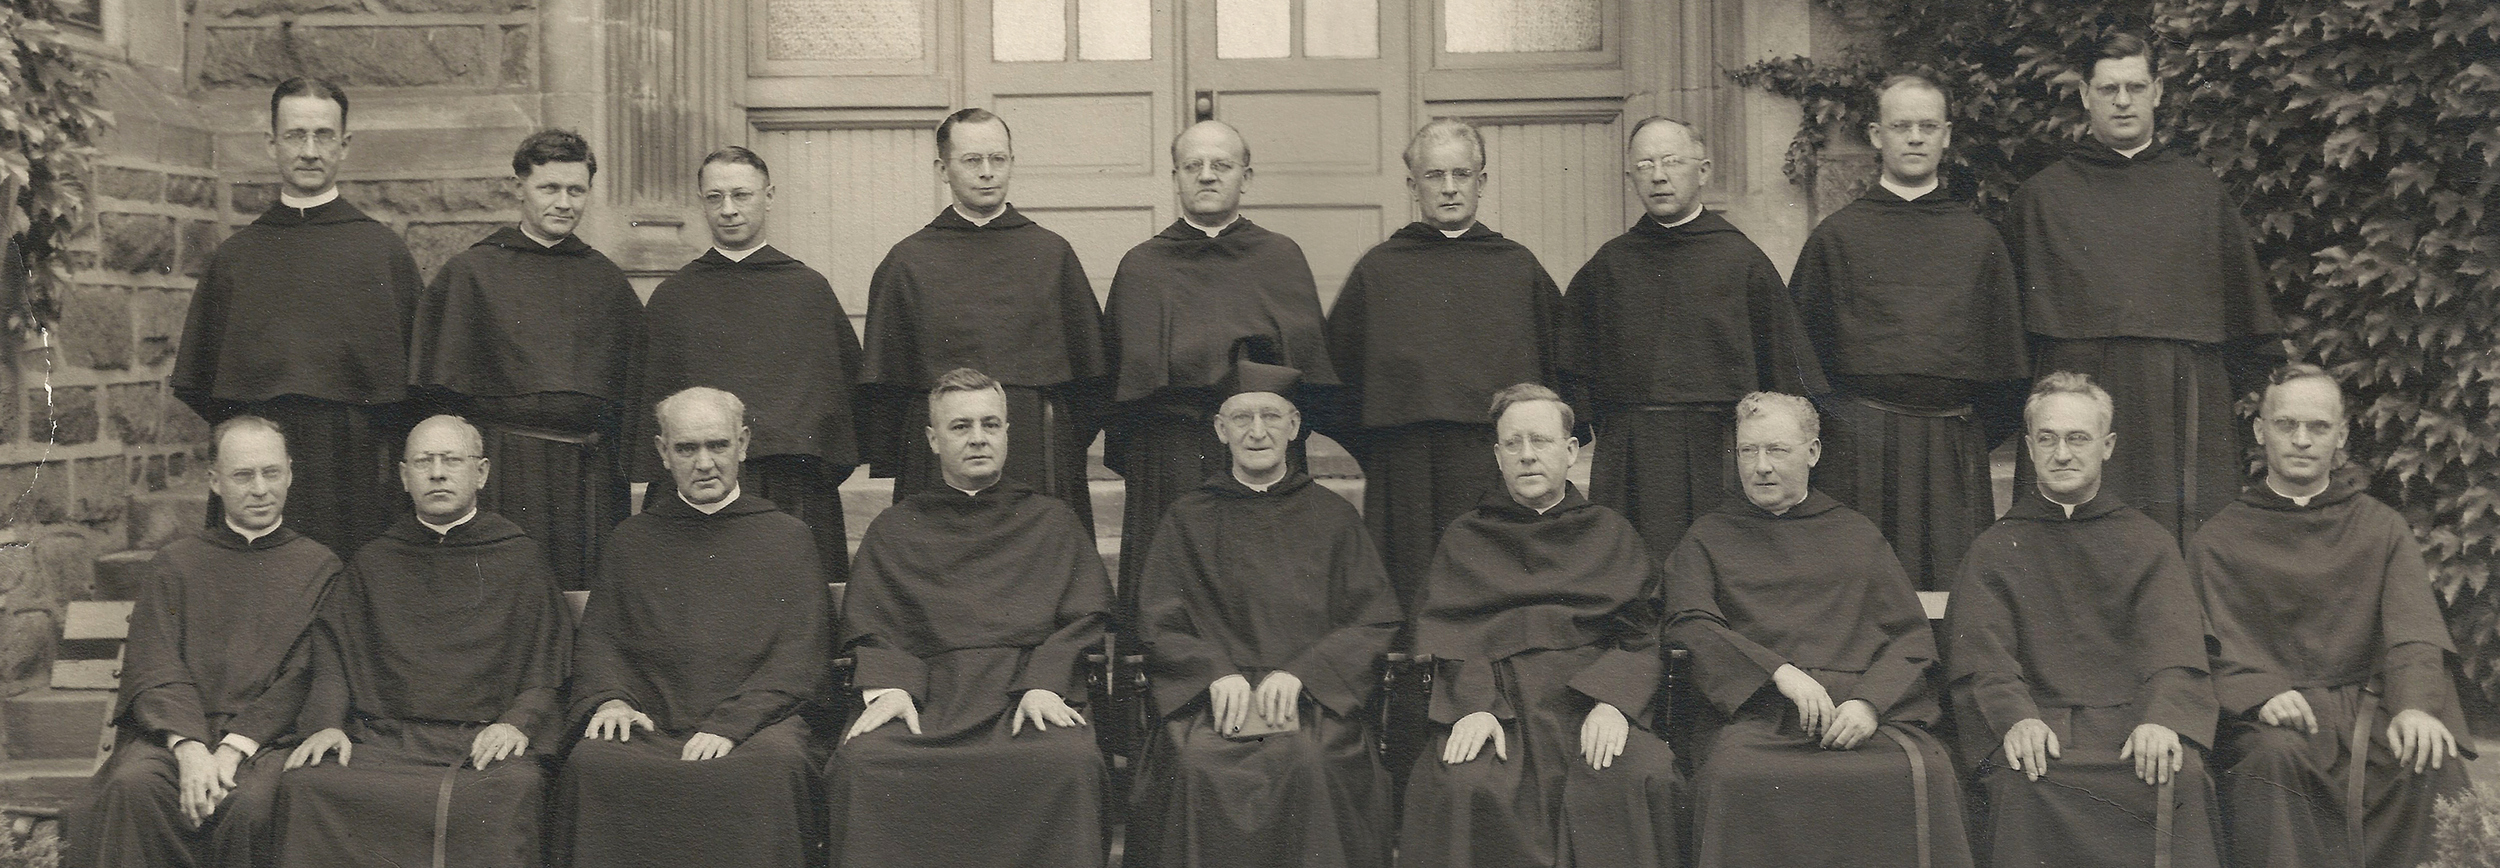 The First Provincial Chapter meeting for the Province of Our Mother of Good Counsel, held in Villanova, Pennsylvania in 1941